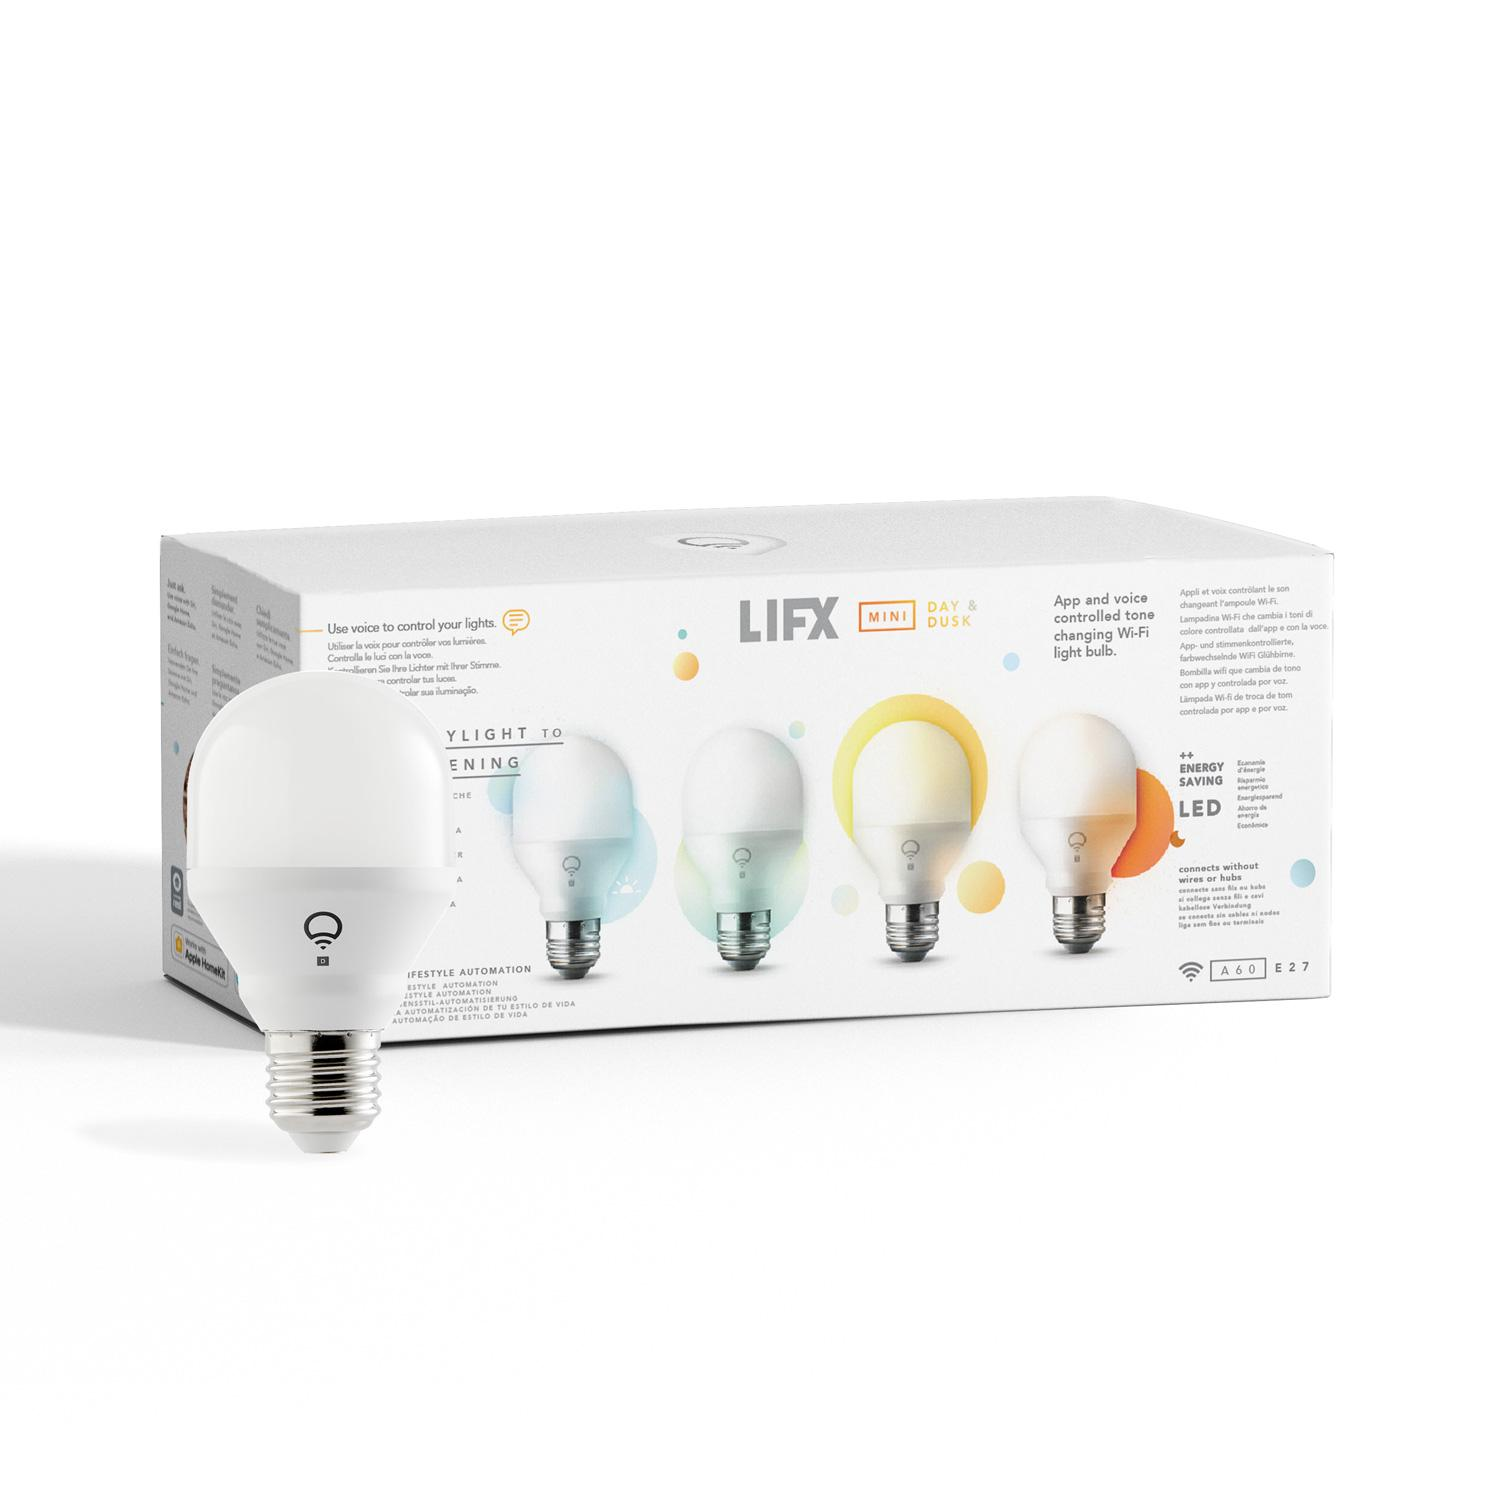 LIFX Snjallpera Mini Day and Dusk E27 WIFI 800lm 9W (4 pack)